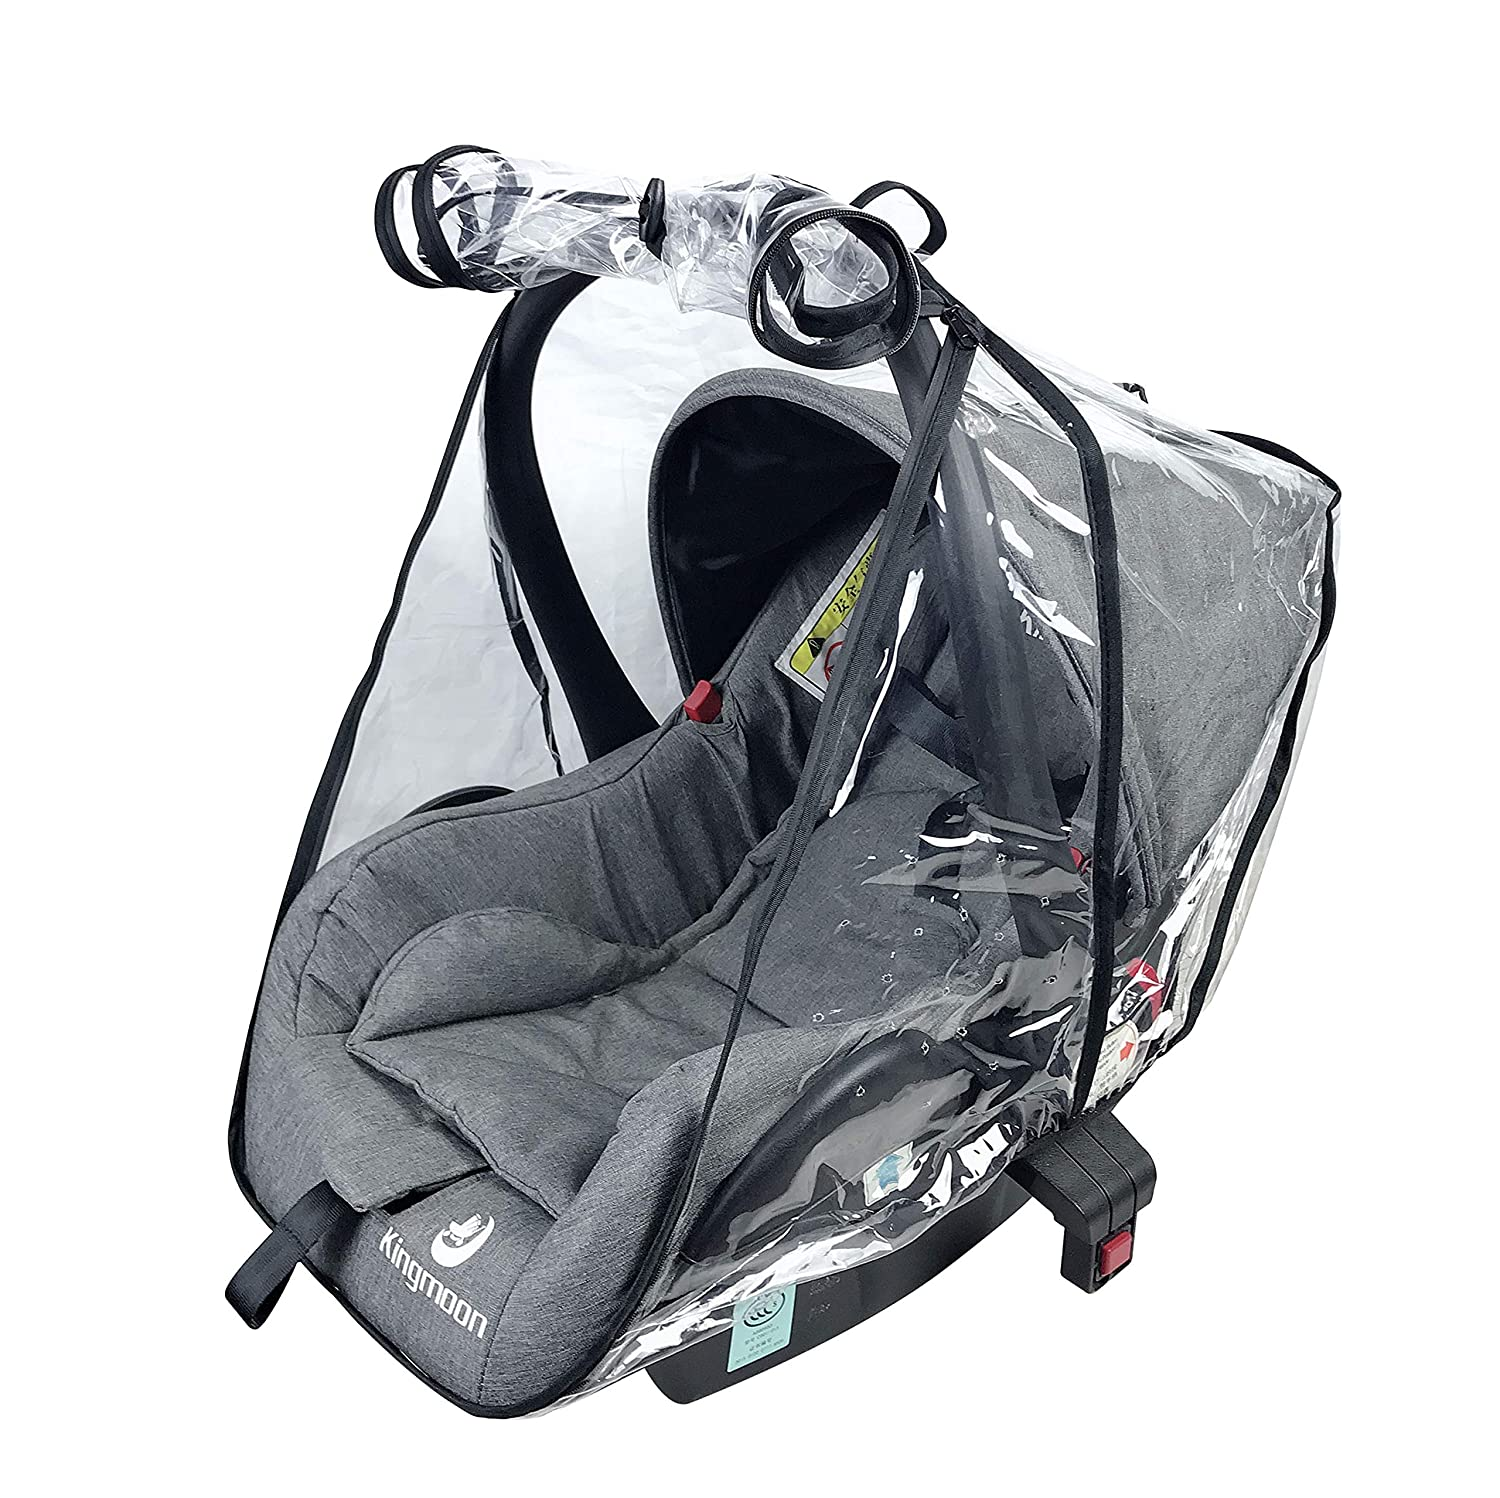 Baby Car Seat Rain Cover Universal Weather Shield Waterproof,Easy Access Zipper,Side Ventilation,EVA Material,Newborn Infant Child Travel Accessories